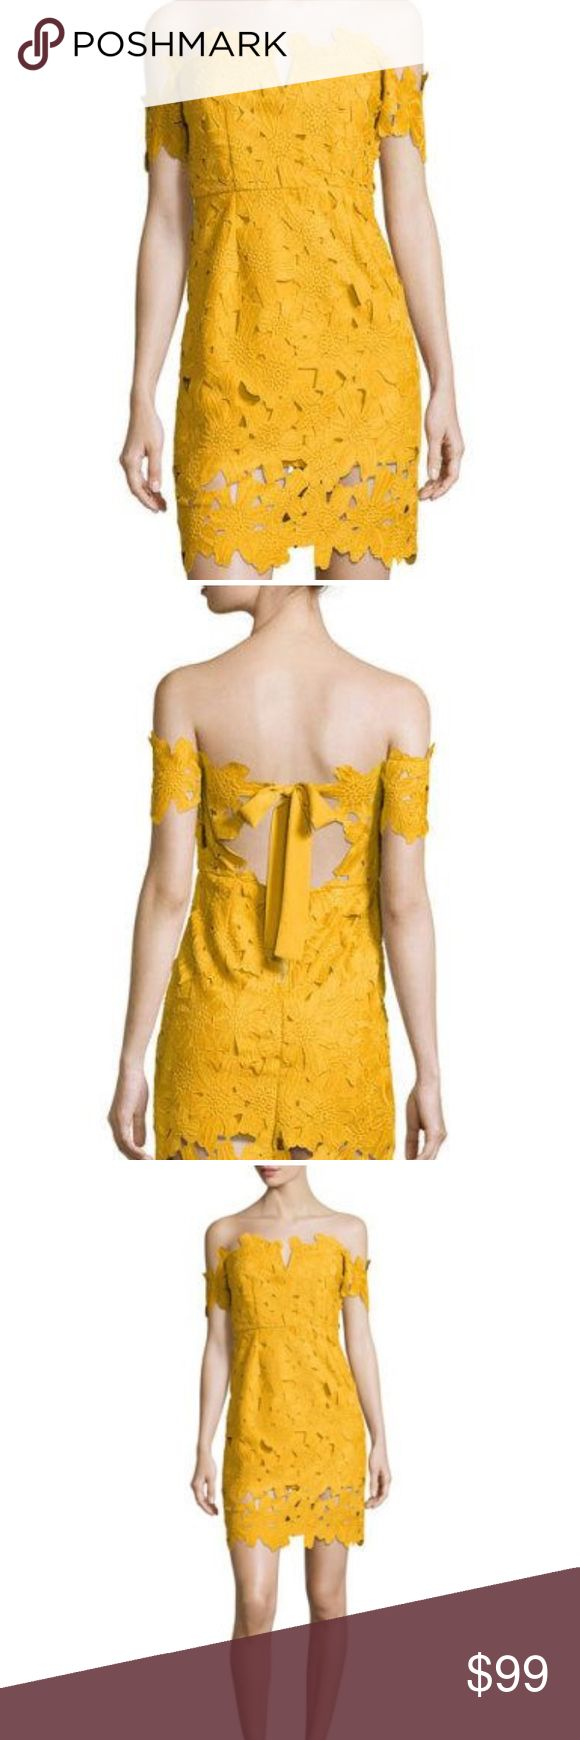 Yellow stretch eyelet lace dress